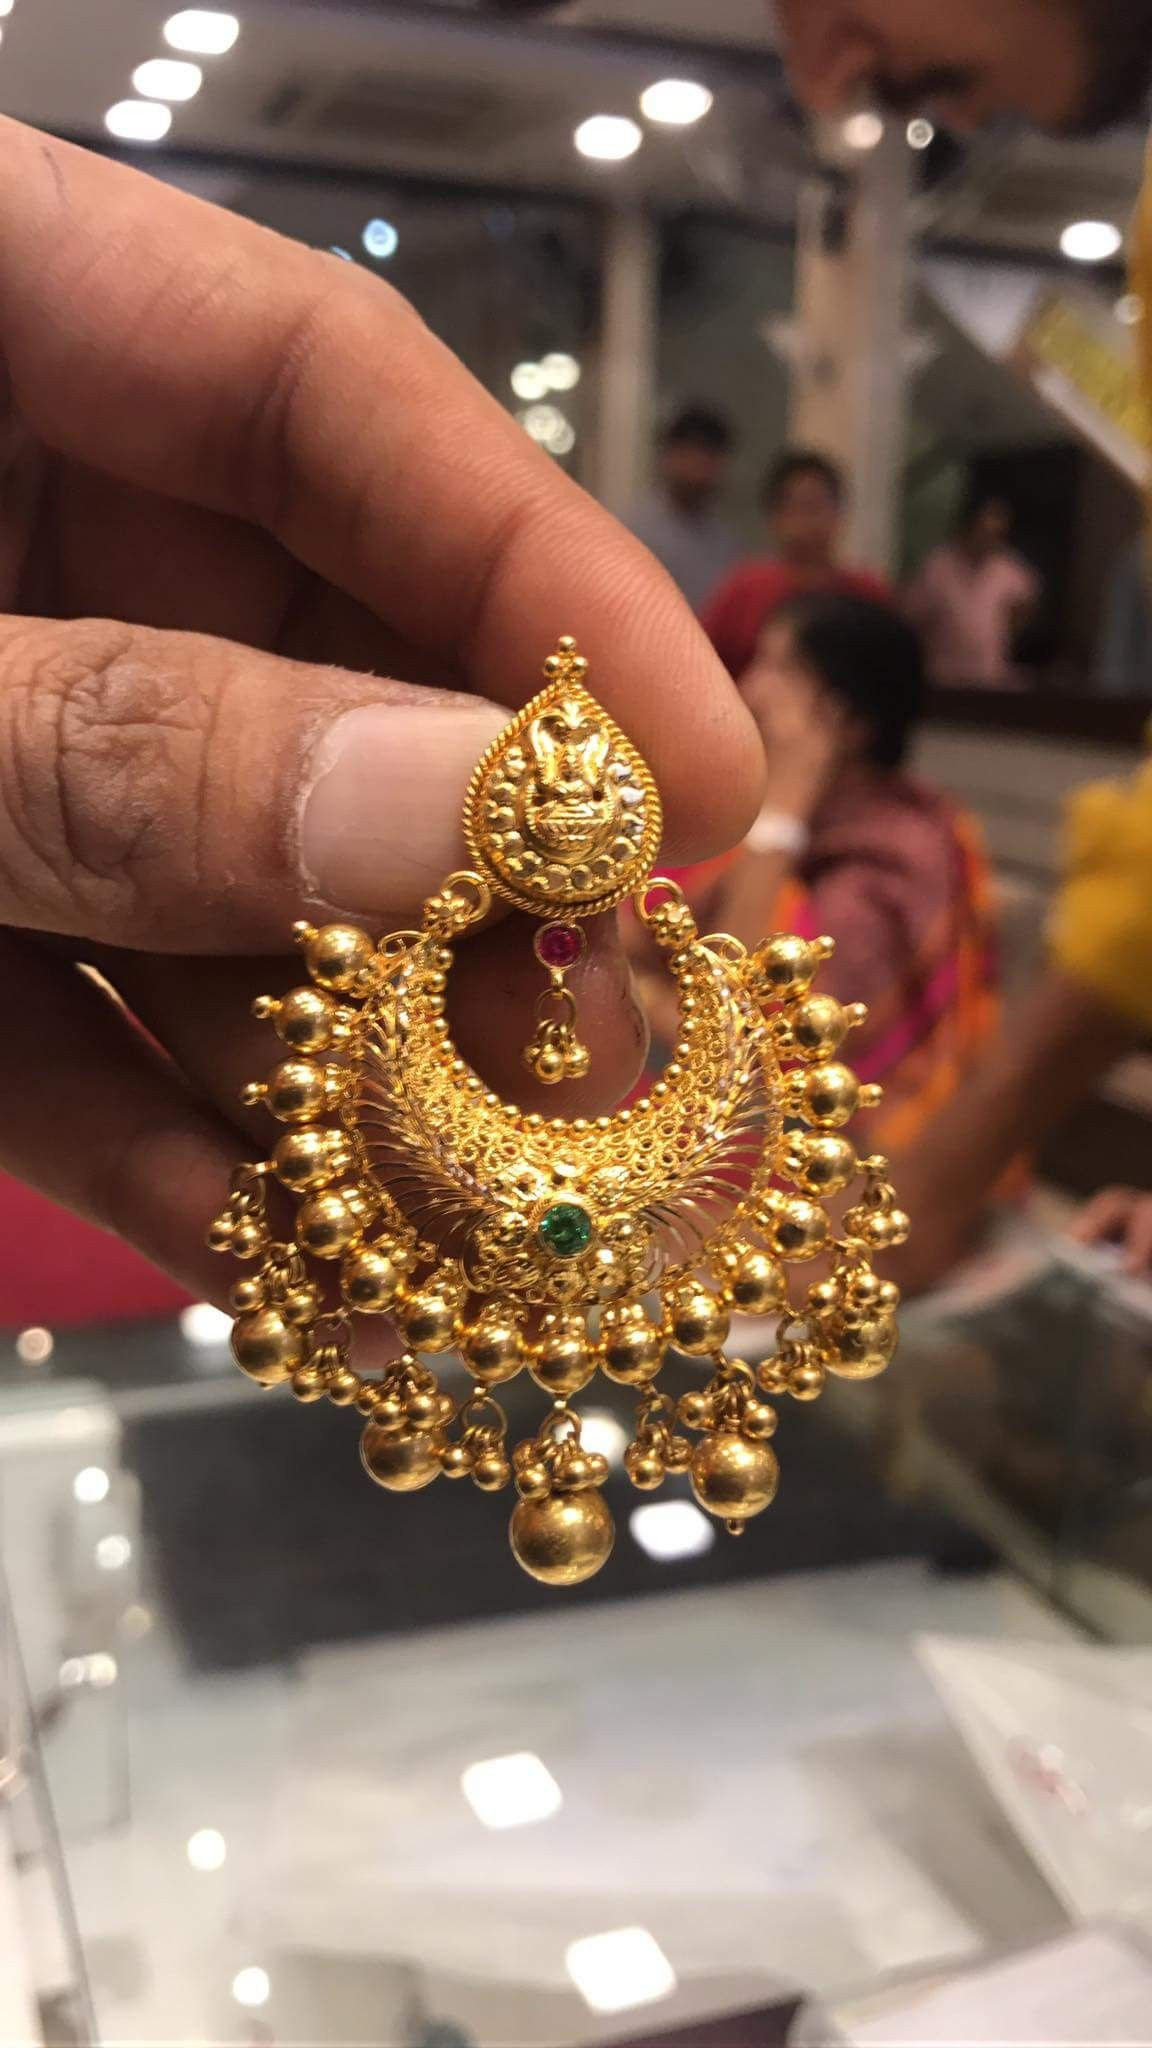 Pin By Samhitha On Jewellery Gold Earrings Designs Gold Jewelry Fashion Jewelry Design Earrings